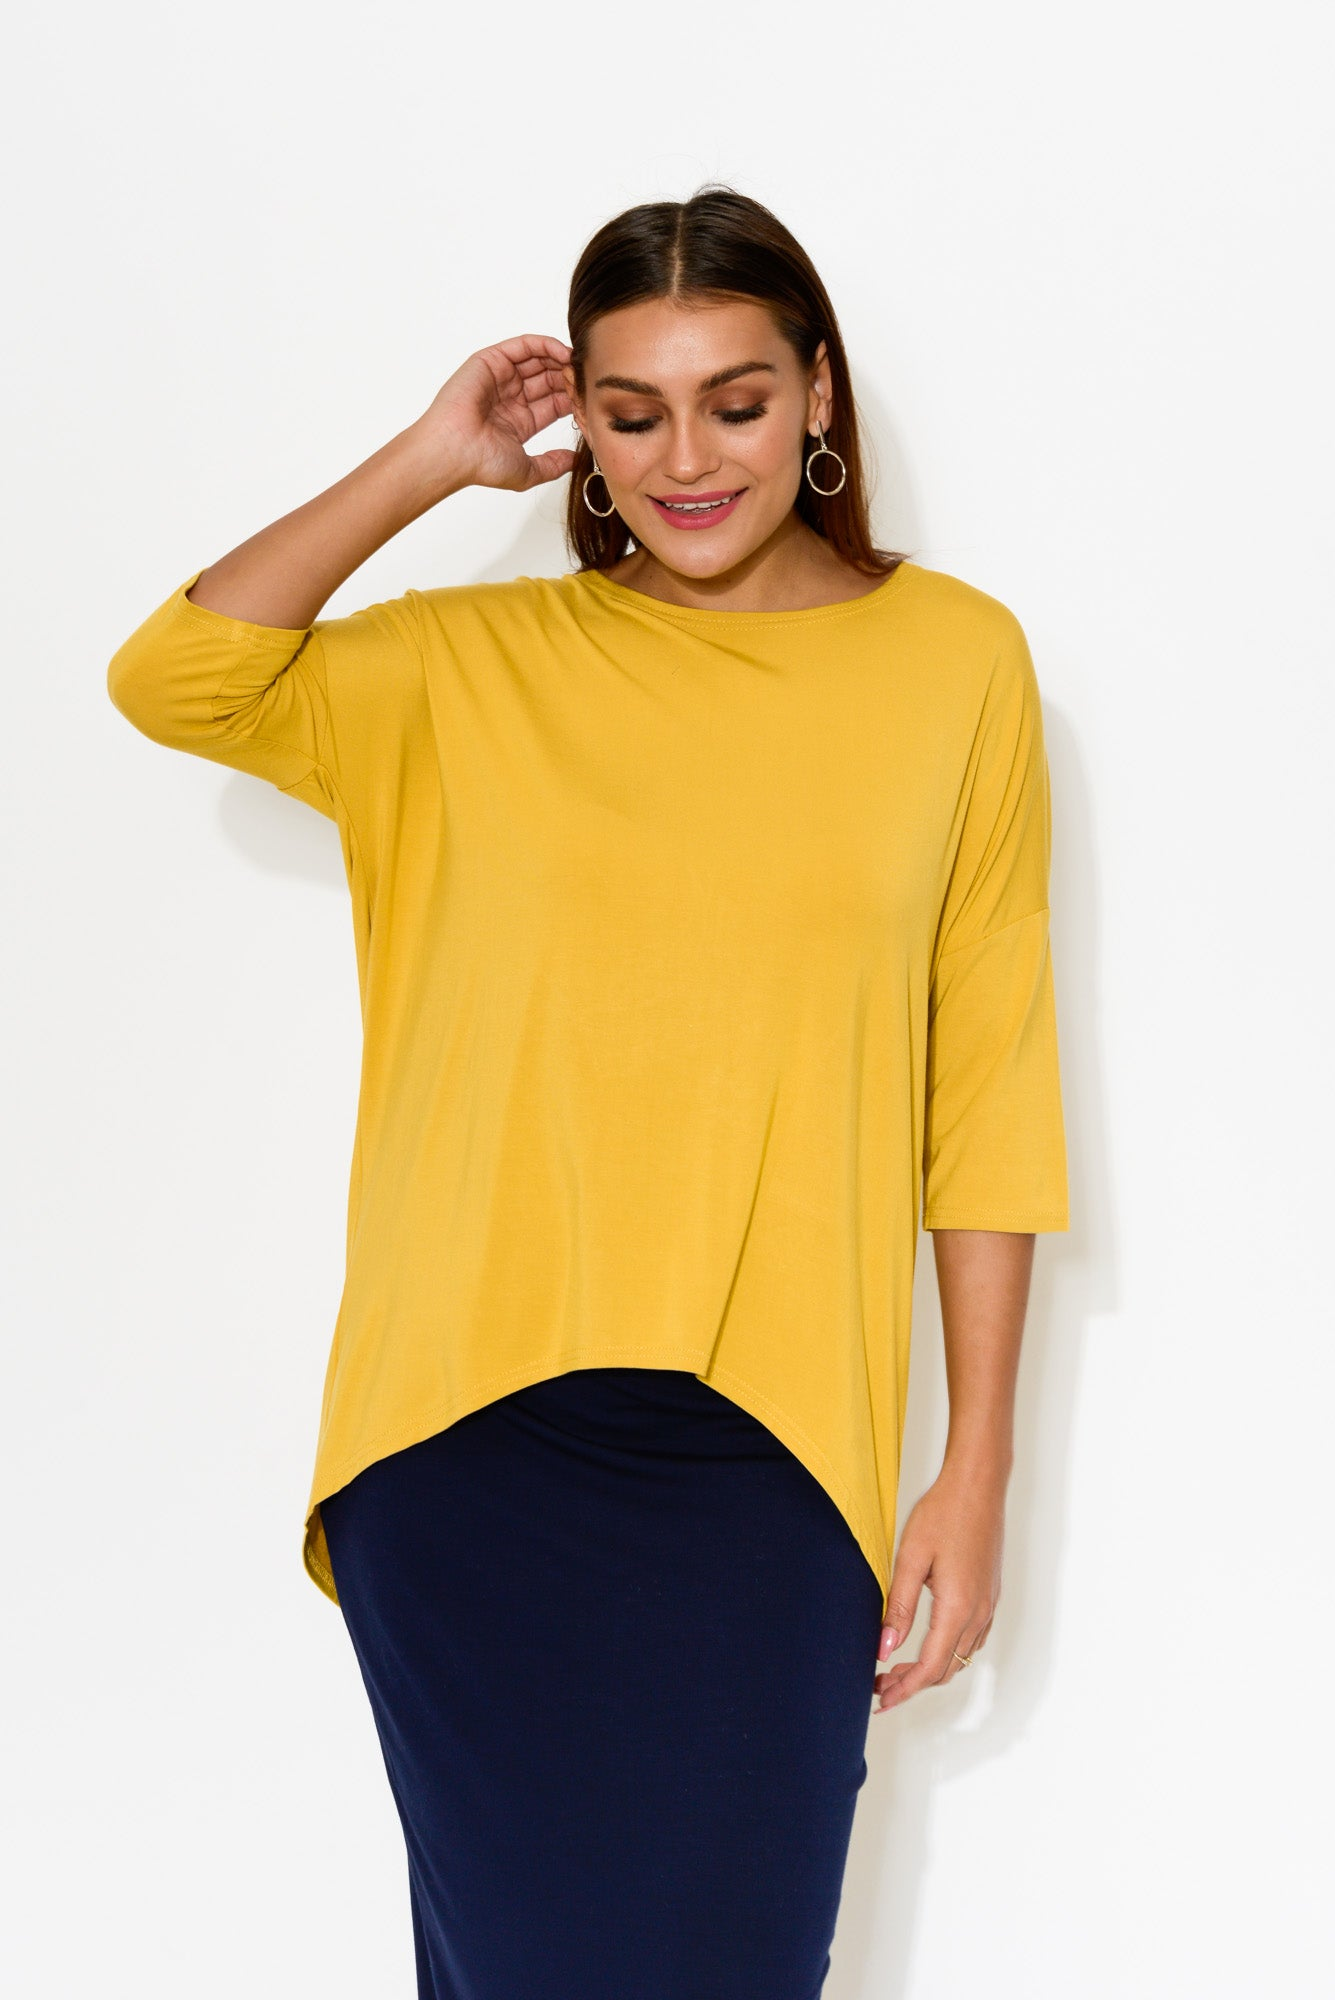 Spencer Yellow Bamboo Top - Blue Bungalow